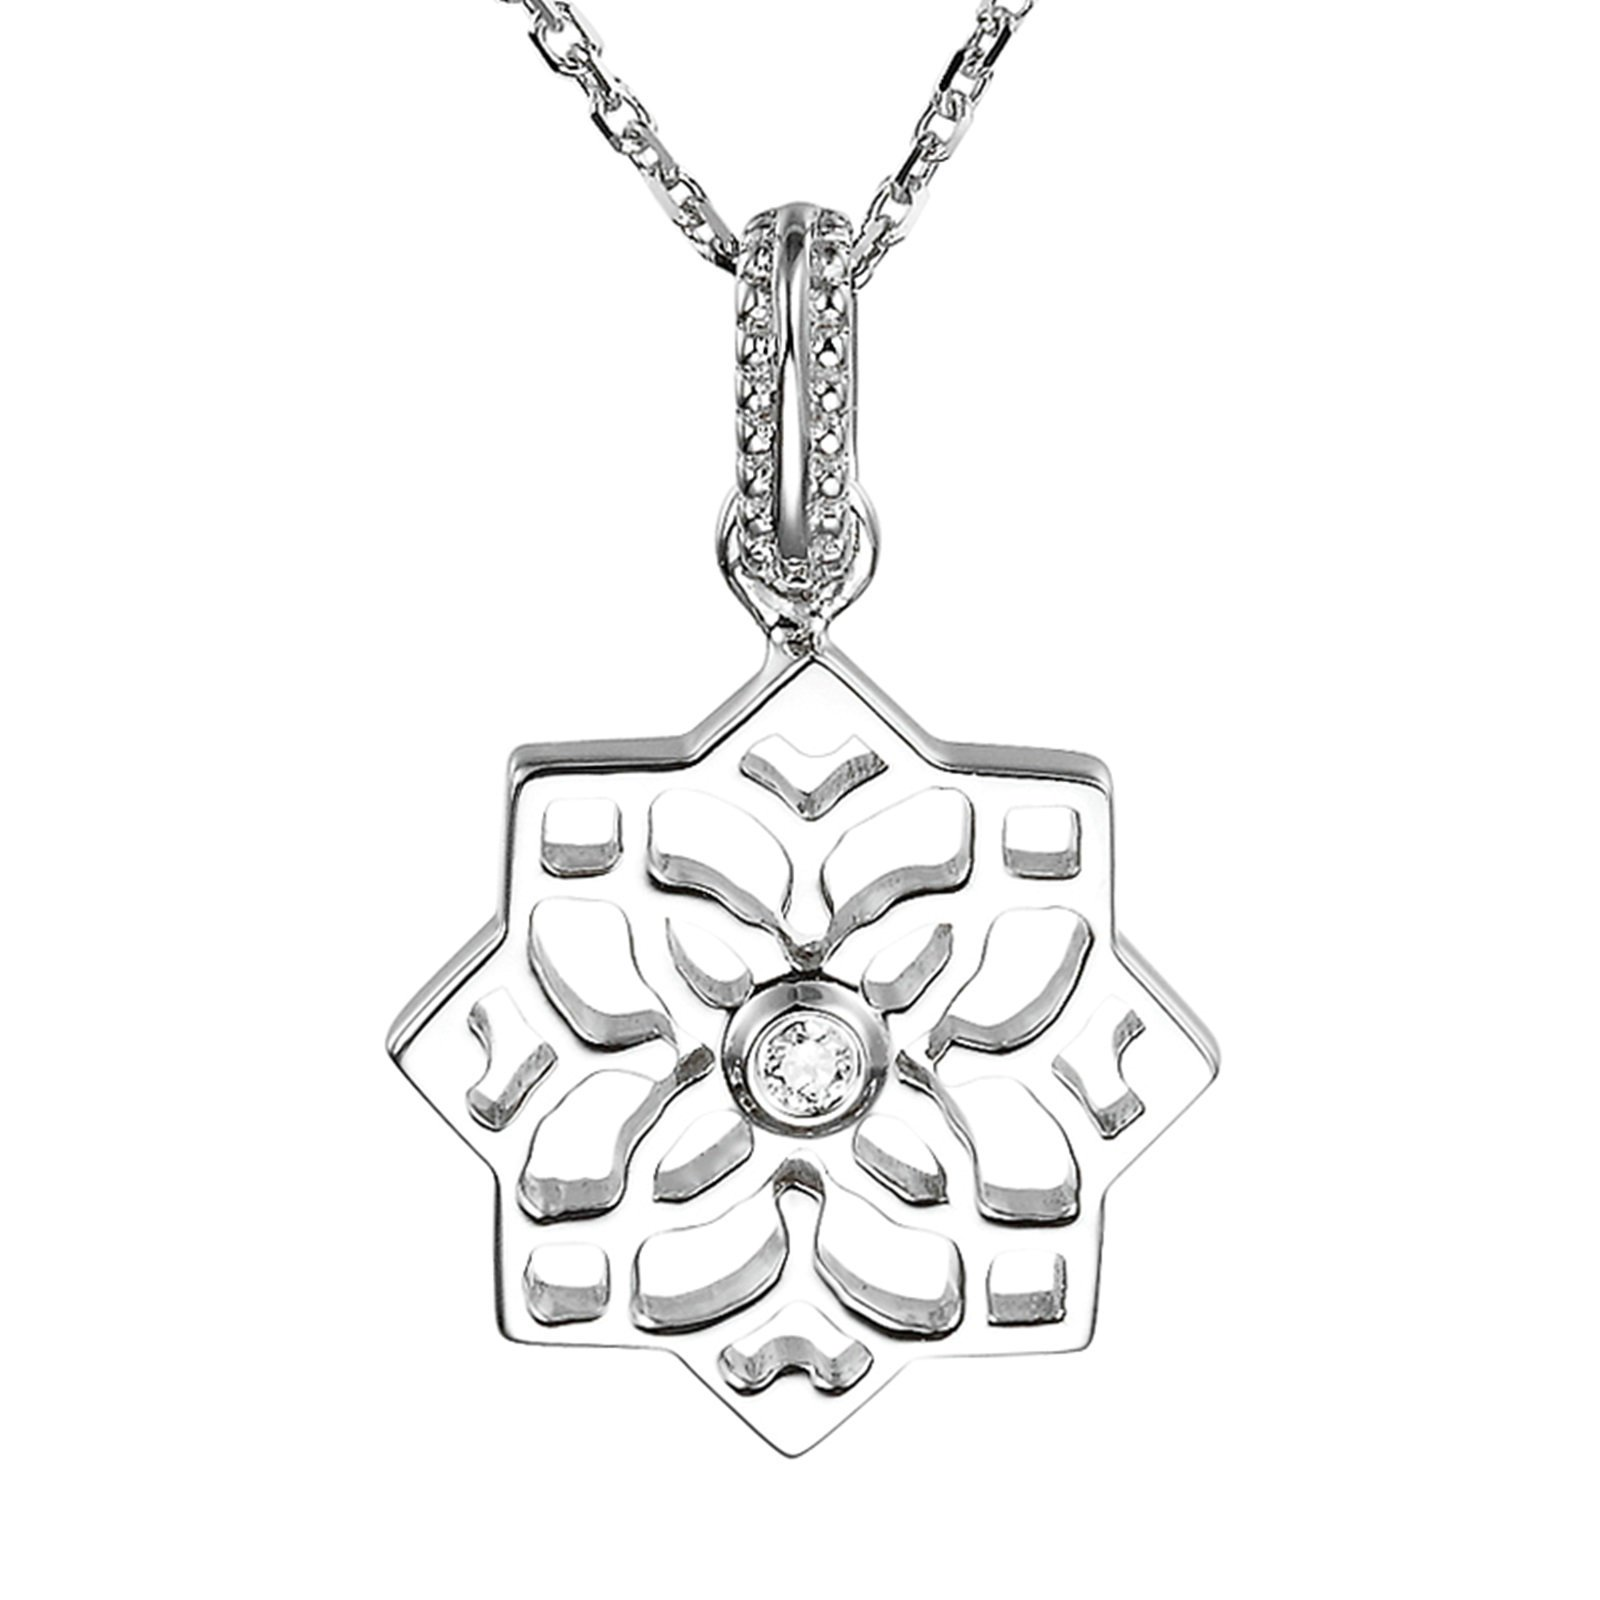 Gnzoe Jewelry 18K White Gold Lotus Flower 0.01ct Pendant Necklace Bride Fashion Chain by Gnzoe